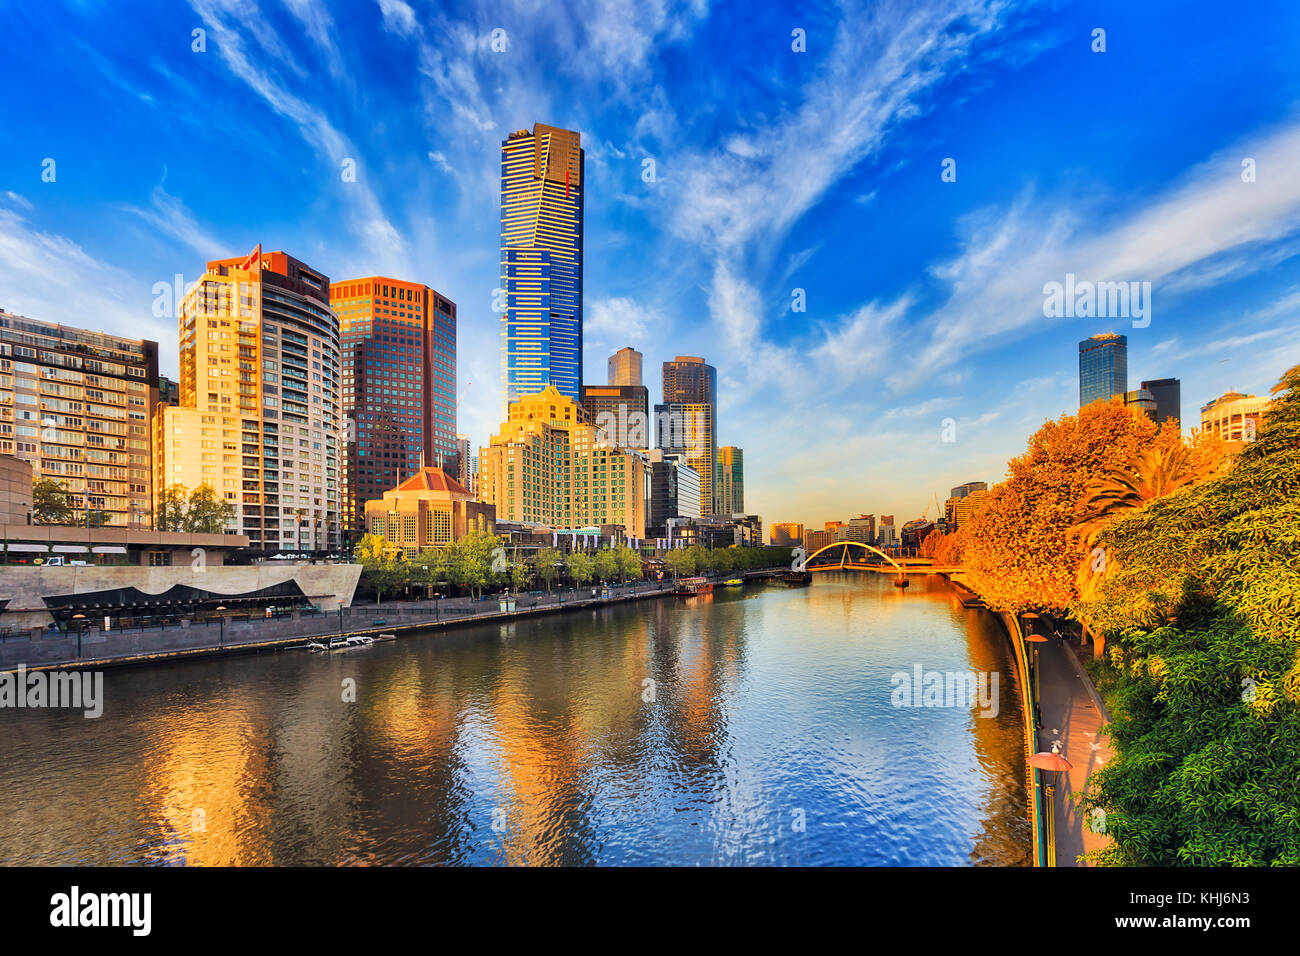 Plus hauts gratte-ciel de Melbourne Eureka tower domine la ville de South Yarra sur la rivière Yarra par beau Photo Stock